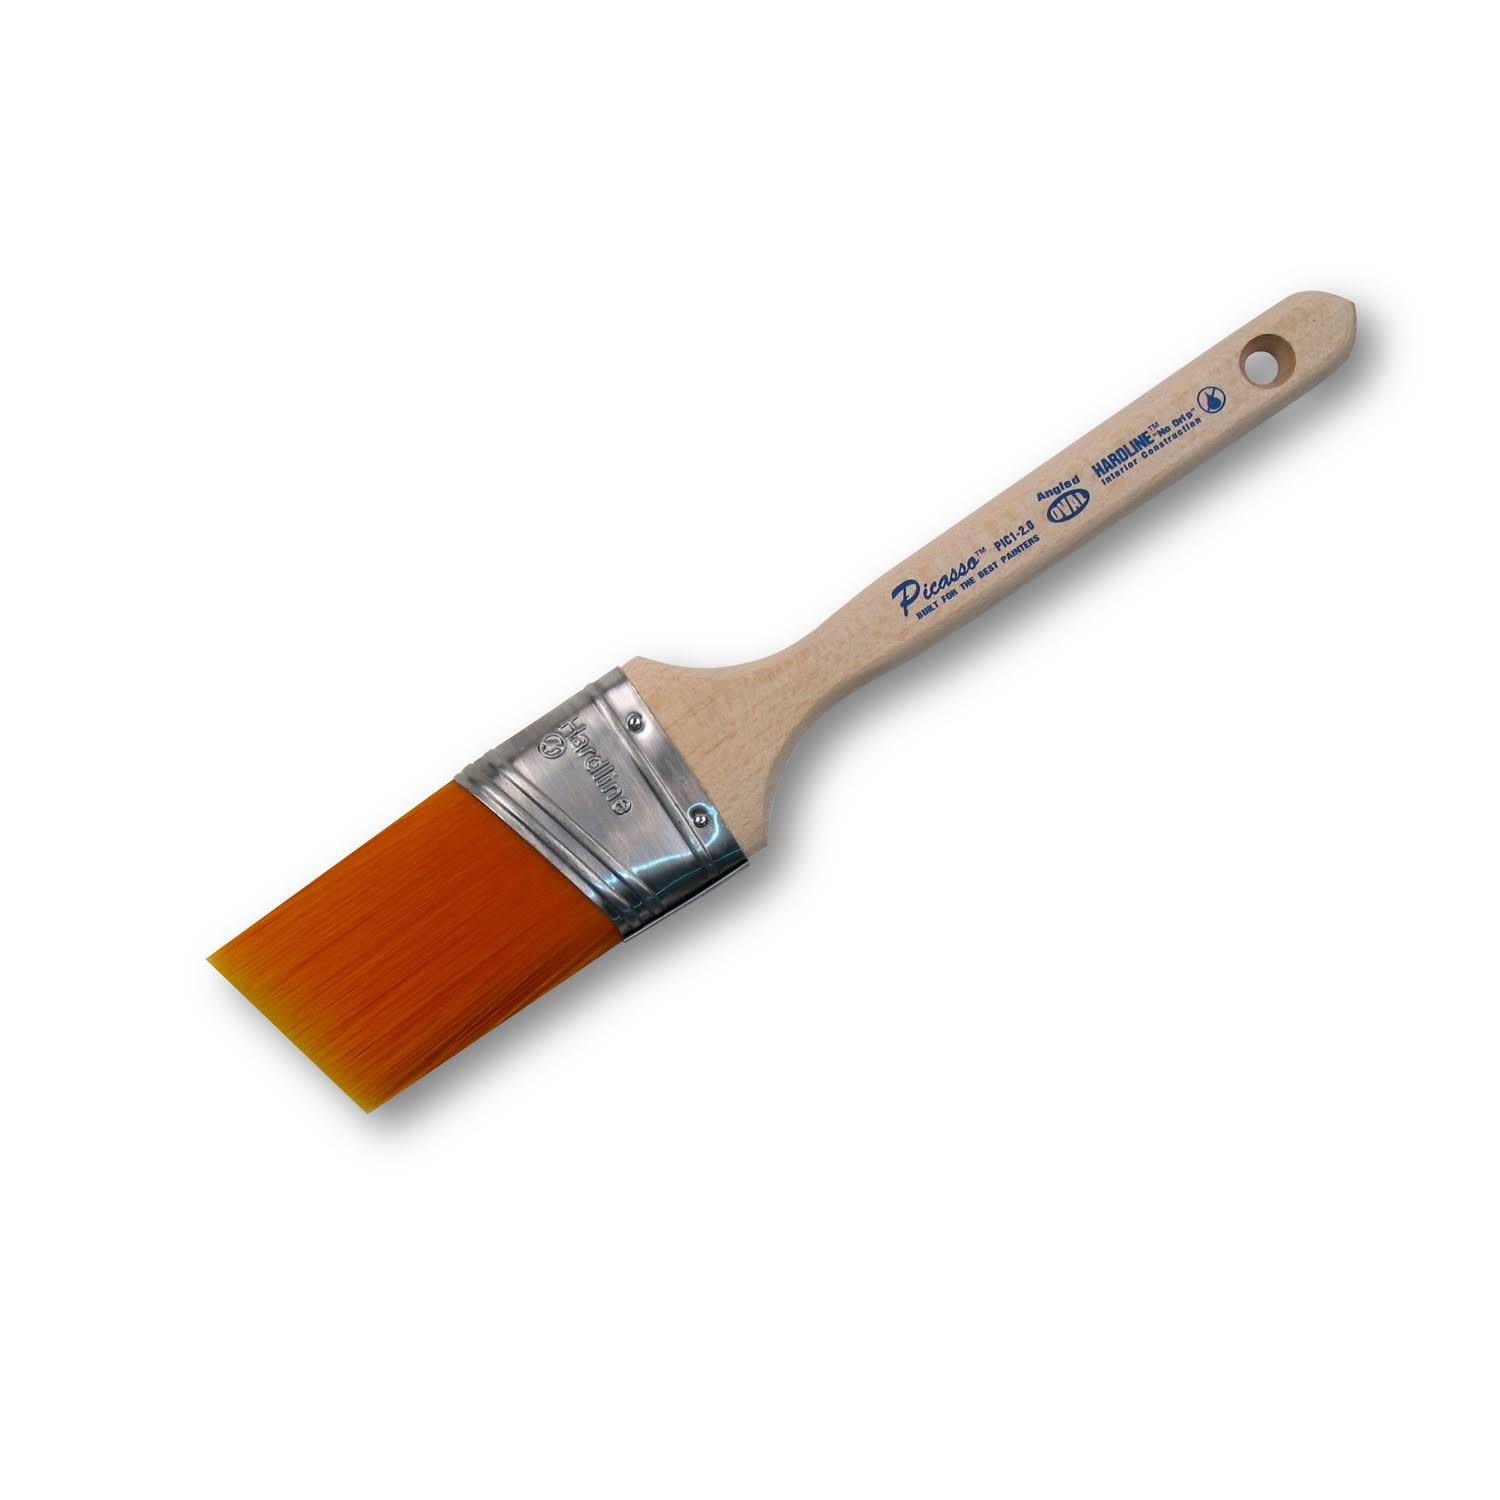 Proform Technologies Picasso Oval Angle Sash Paint Brush - 2in